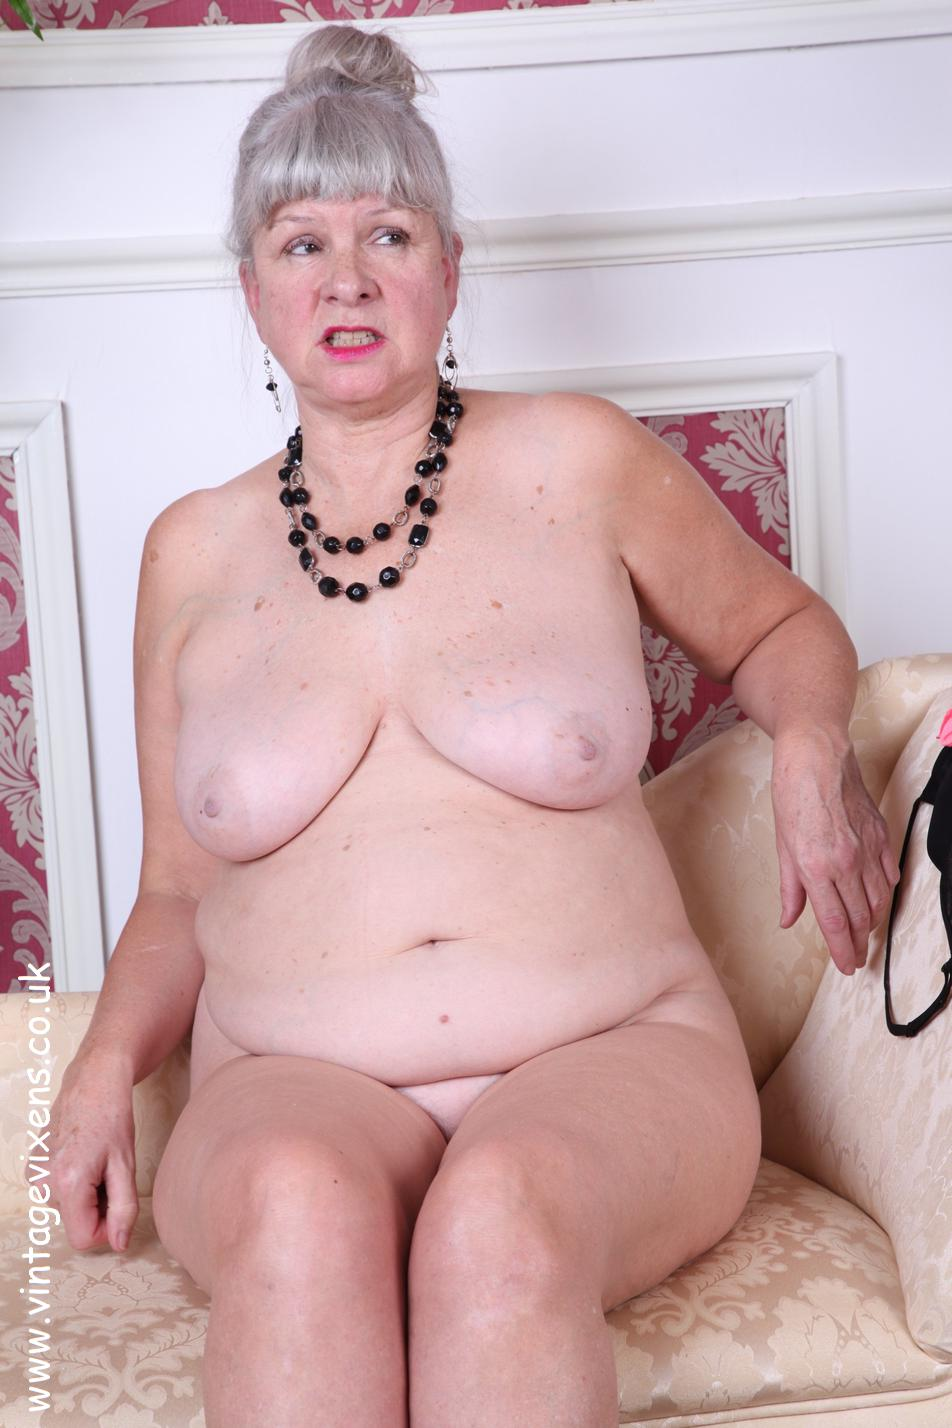 Archive Of Old Women Grannies New Photosets-2339